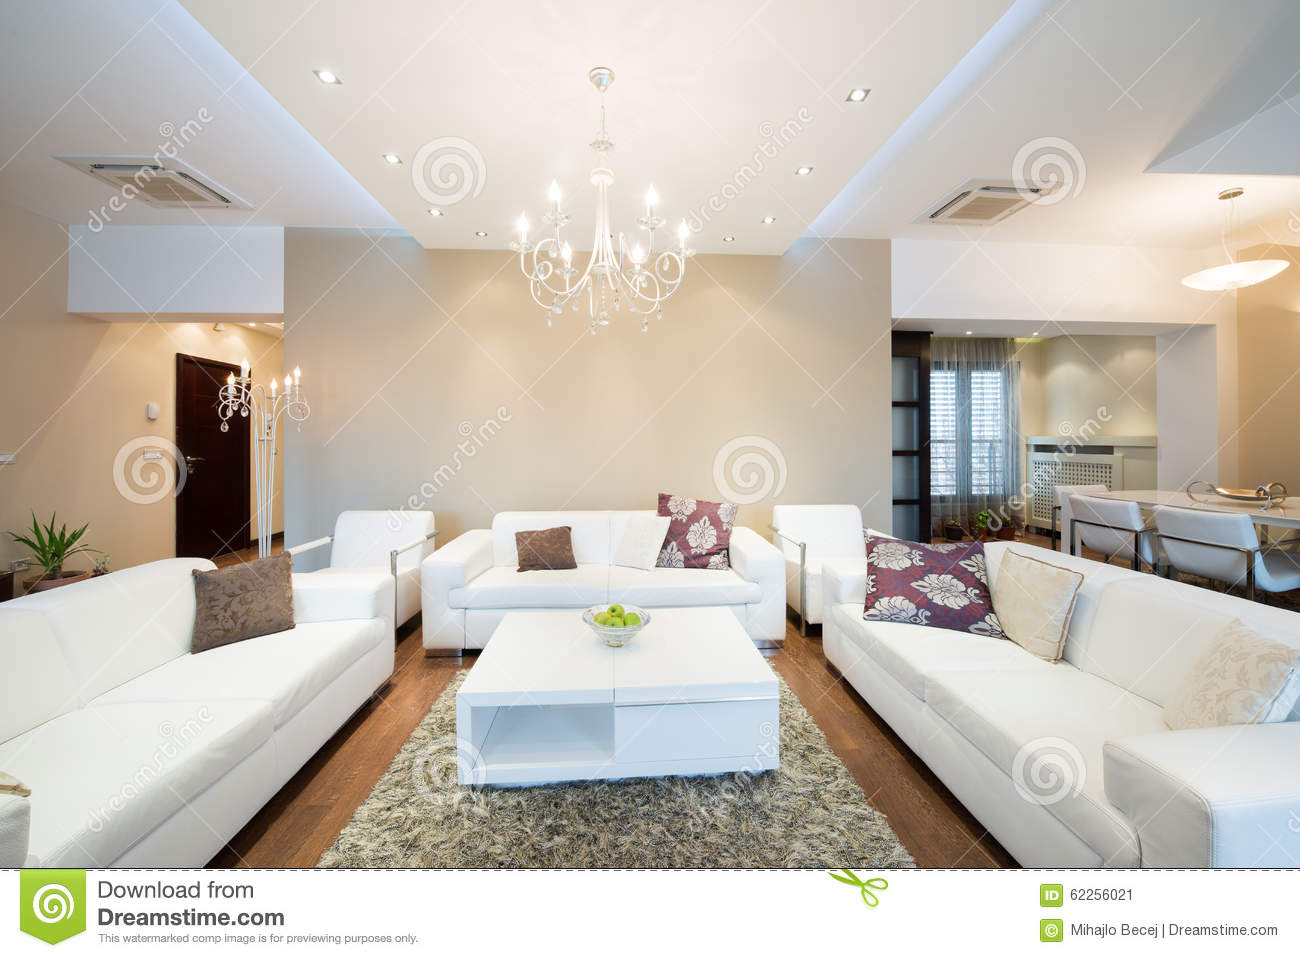 Interior Of A Modern Spacious Living Room Stock Image - Image of ...